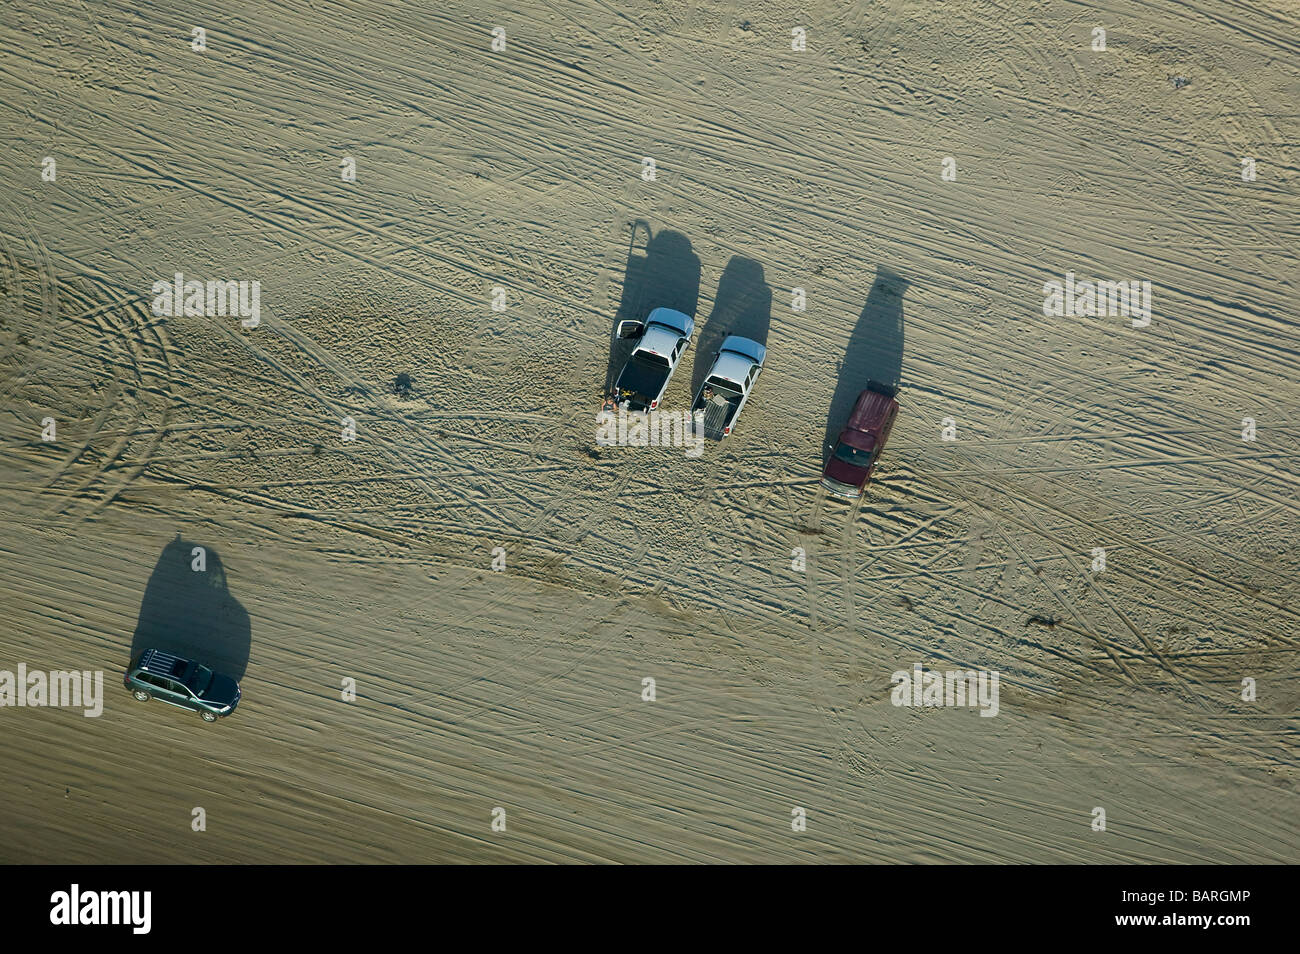 aerial view above cars parked driving Pismo beach near Oceano Santa Maria county central California - Stock Image